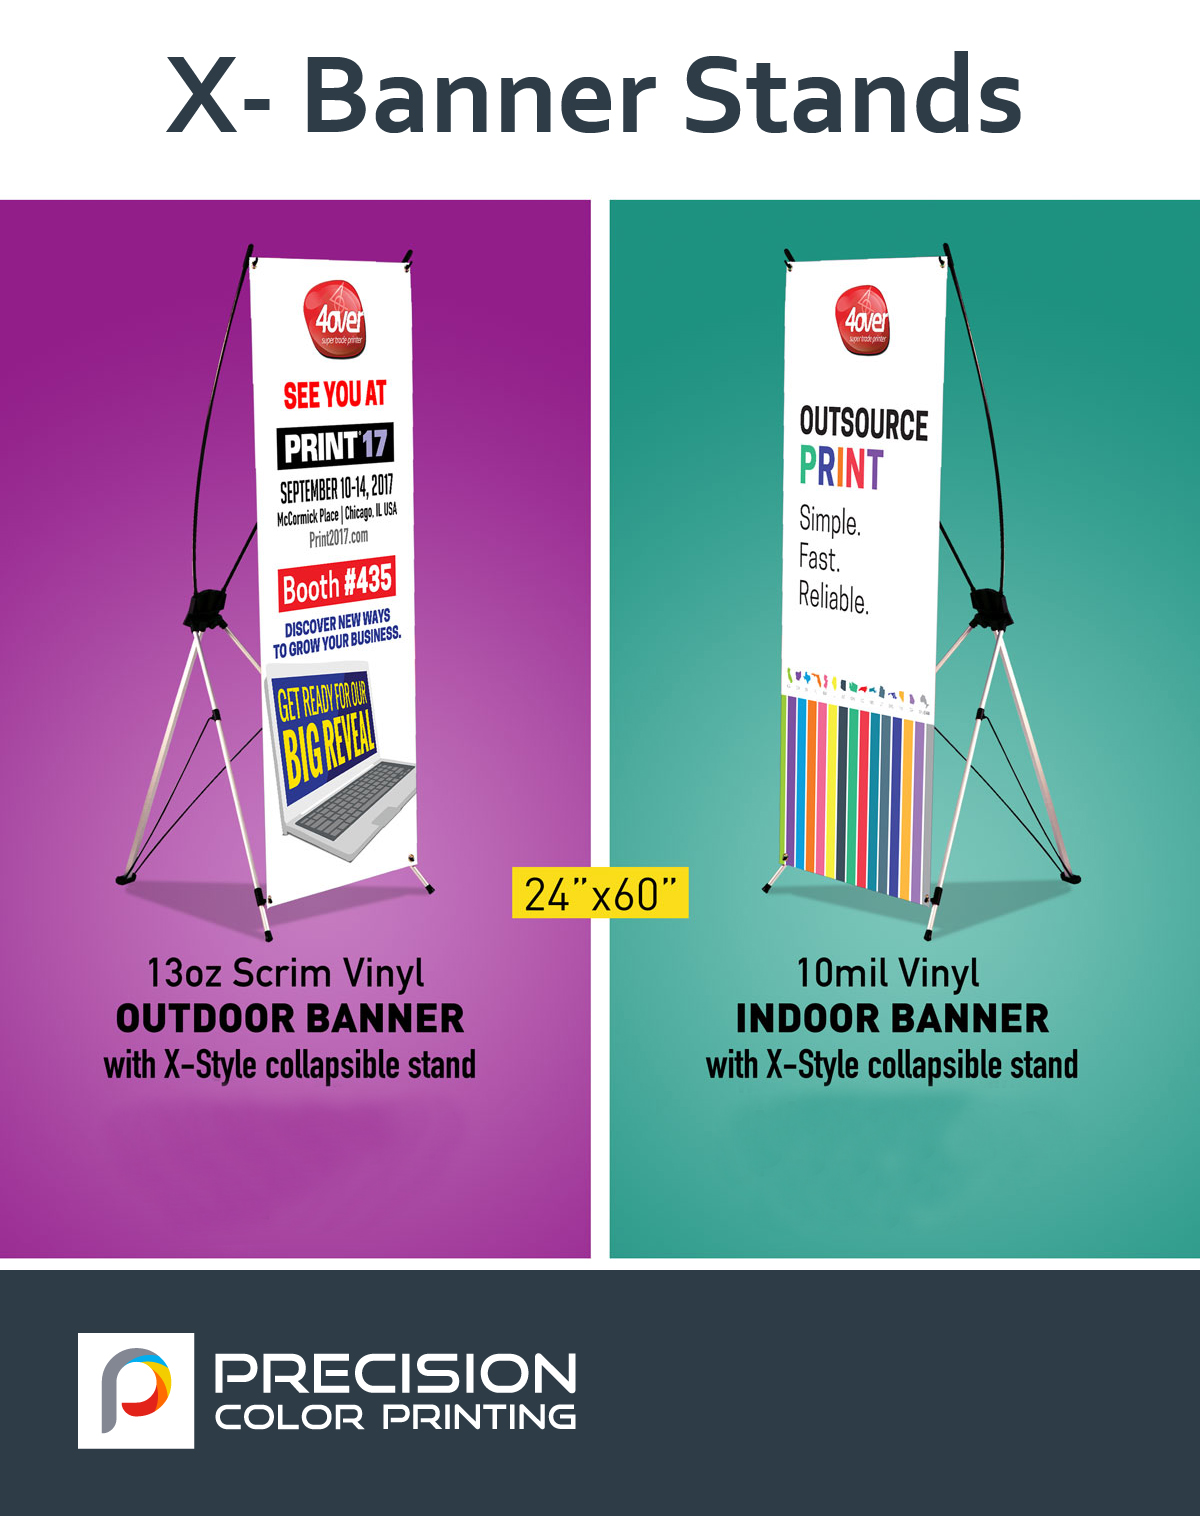 X-Frame Banner – Precision Color Printing